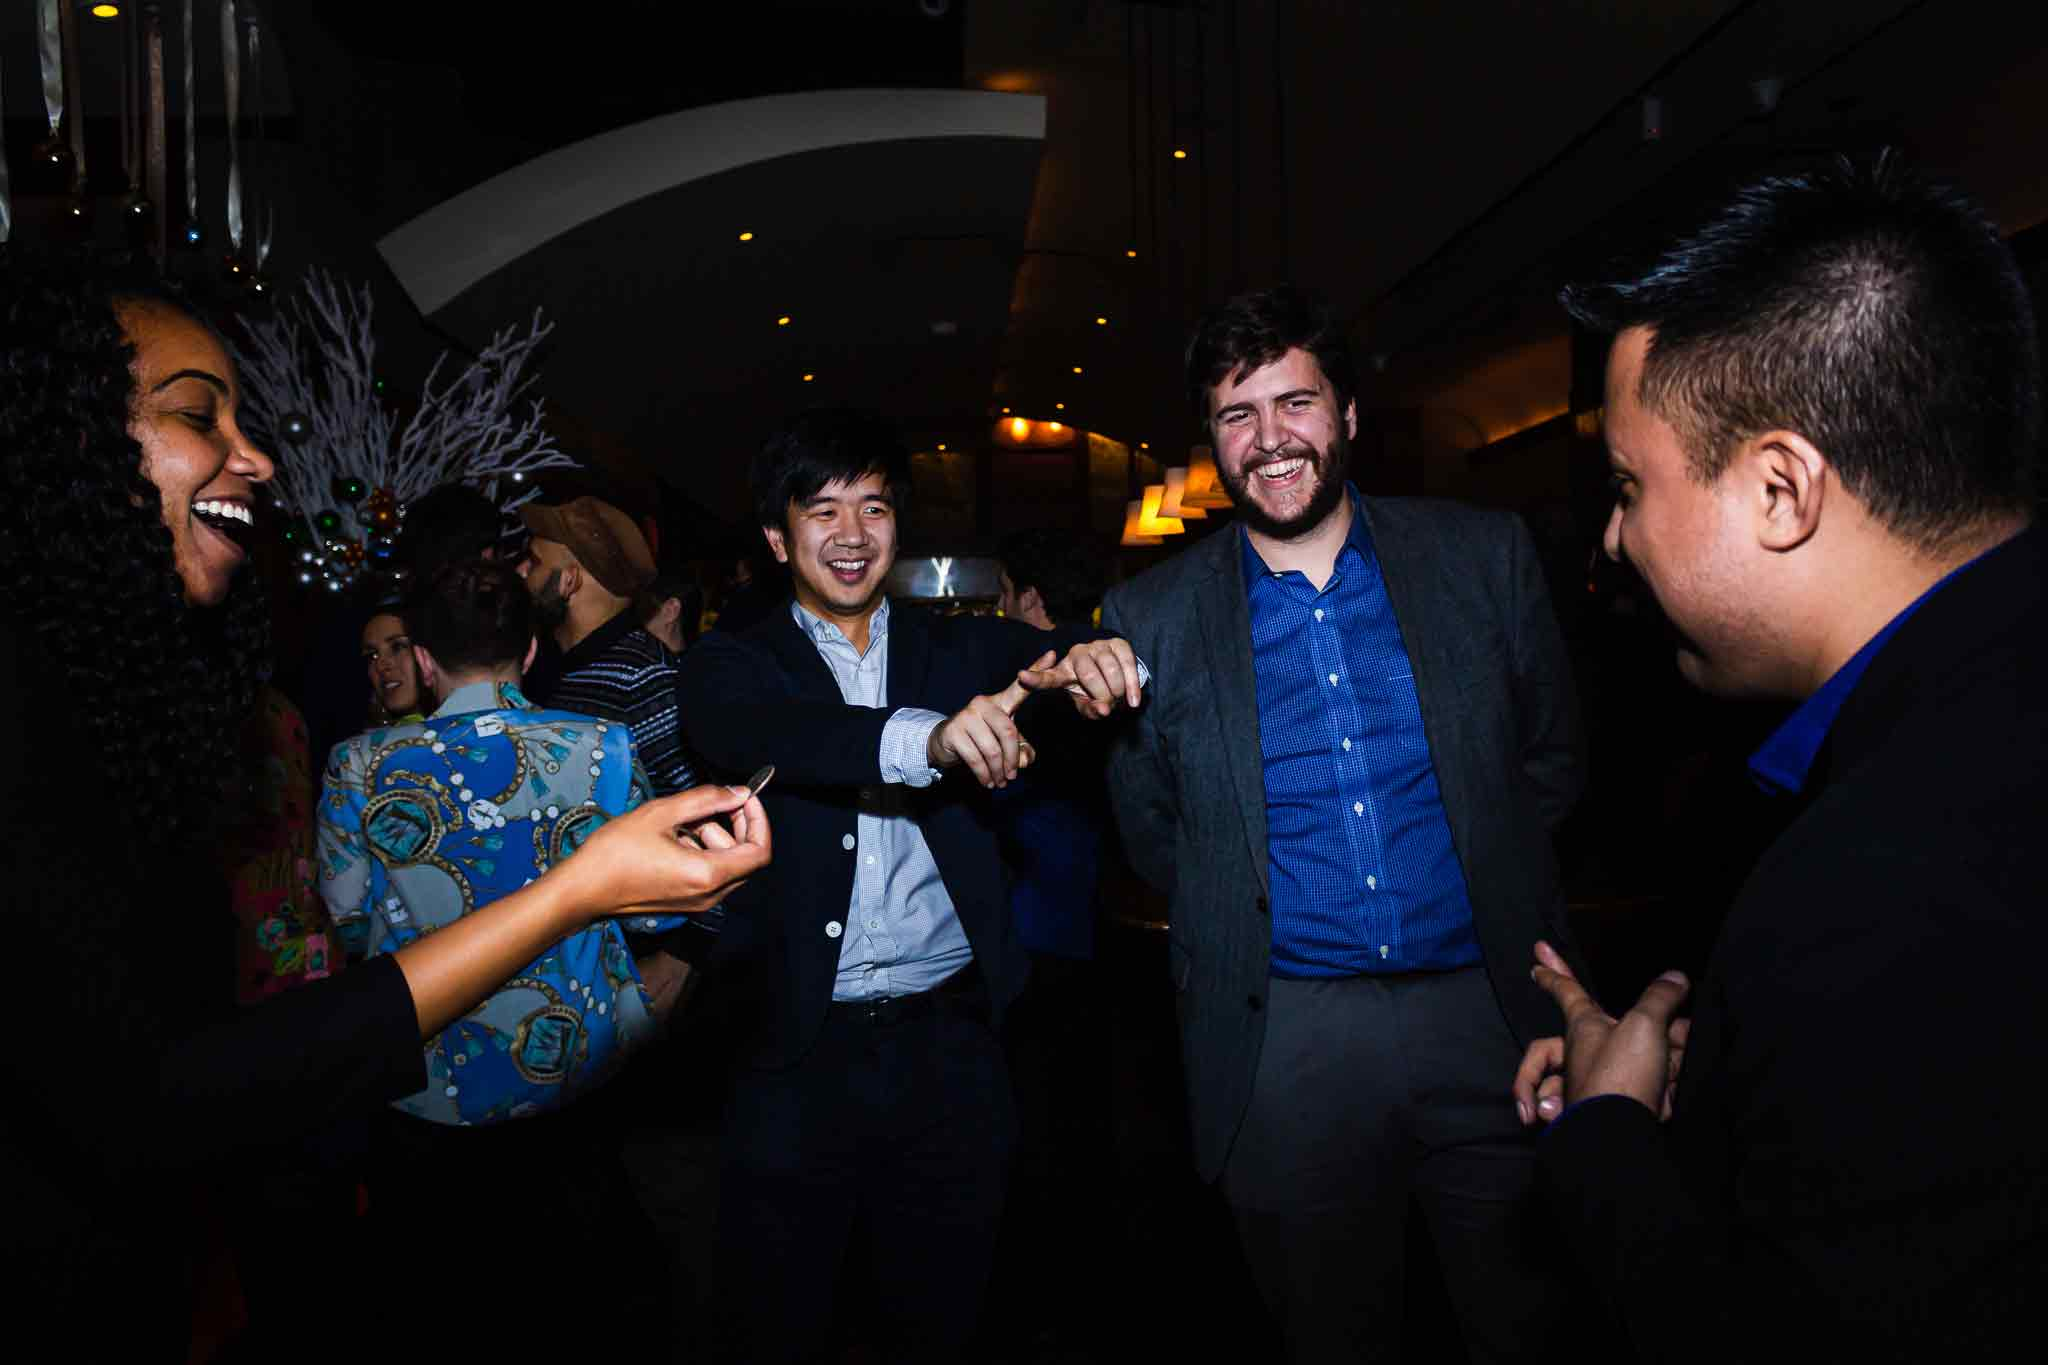 guy-makes-cross-with-fingers-smiling-guests-nyc-magician-richard-torres_web